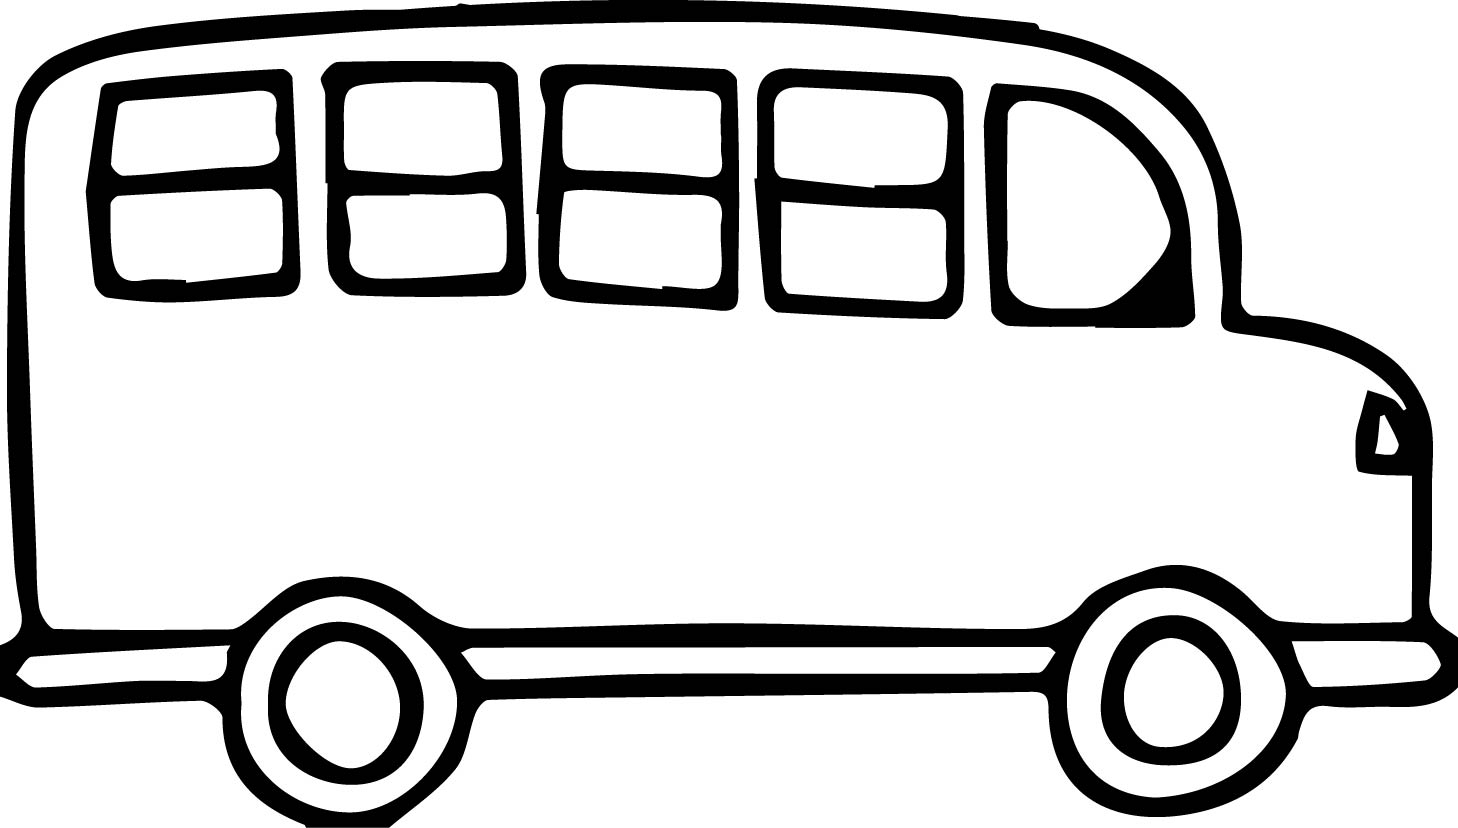 Bus Clipart Black And White Inspirational Van Clipart Black And